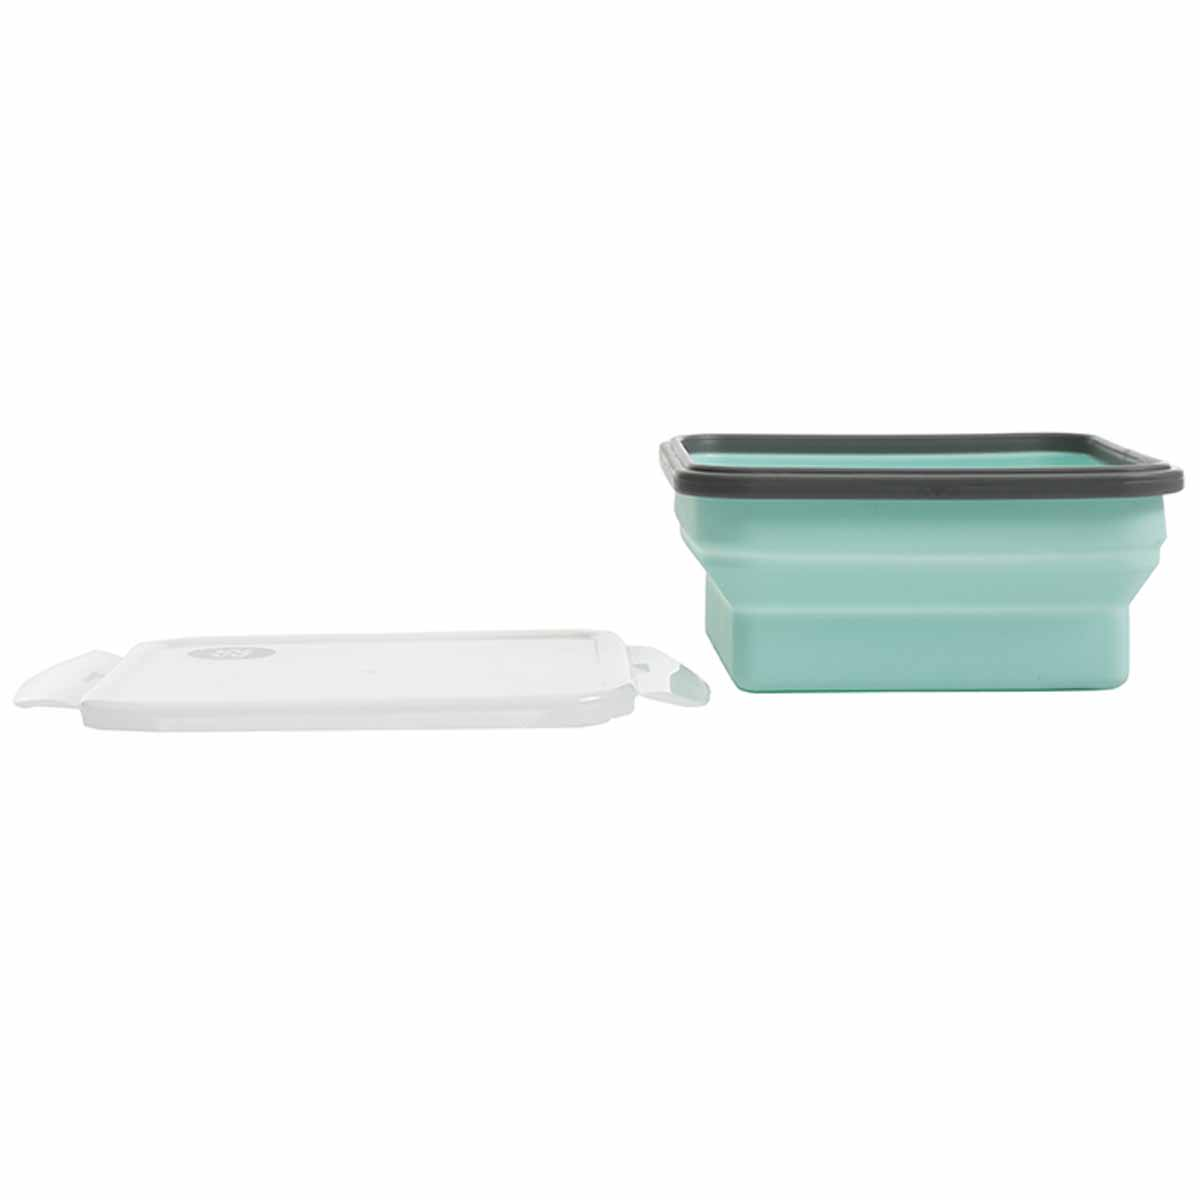 "5"" Silicone Portion Control Container - alternate view 2"